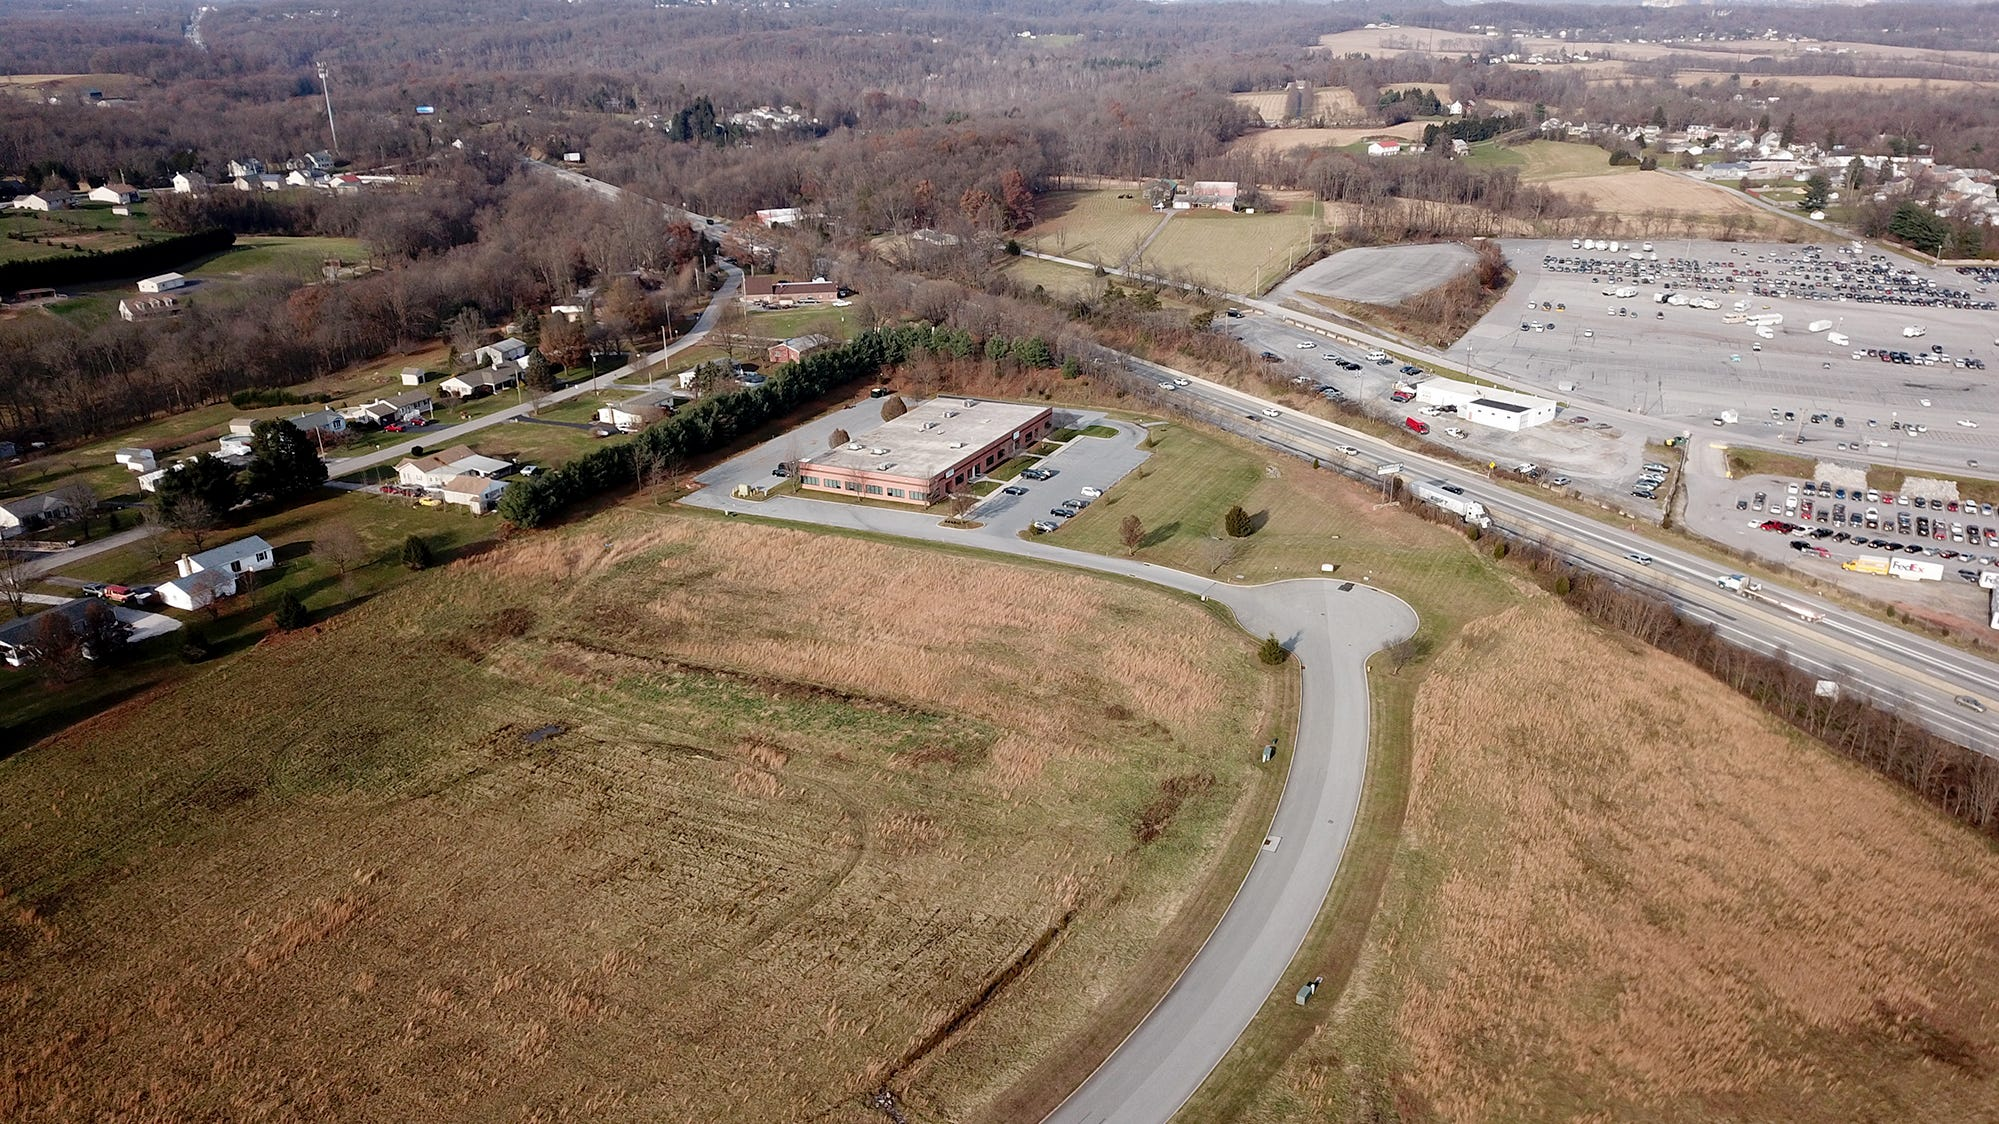 Plan for new warehouse in Conewago Twp. would require rerouting Exit 28